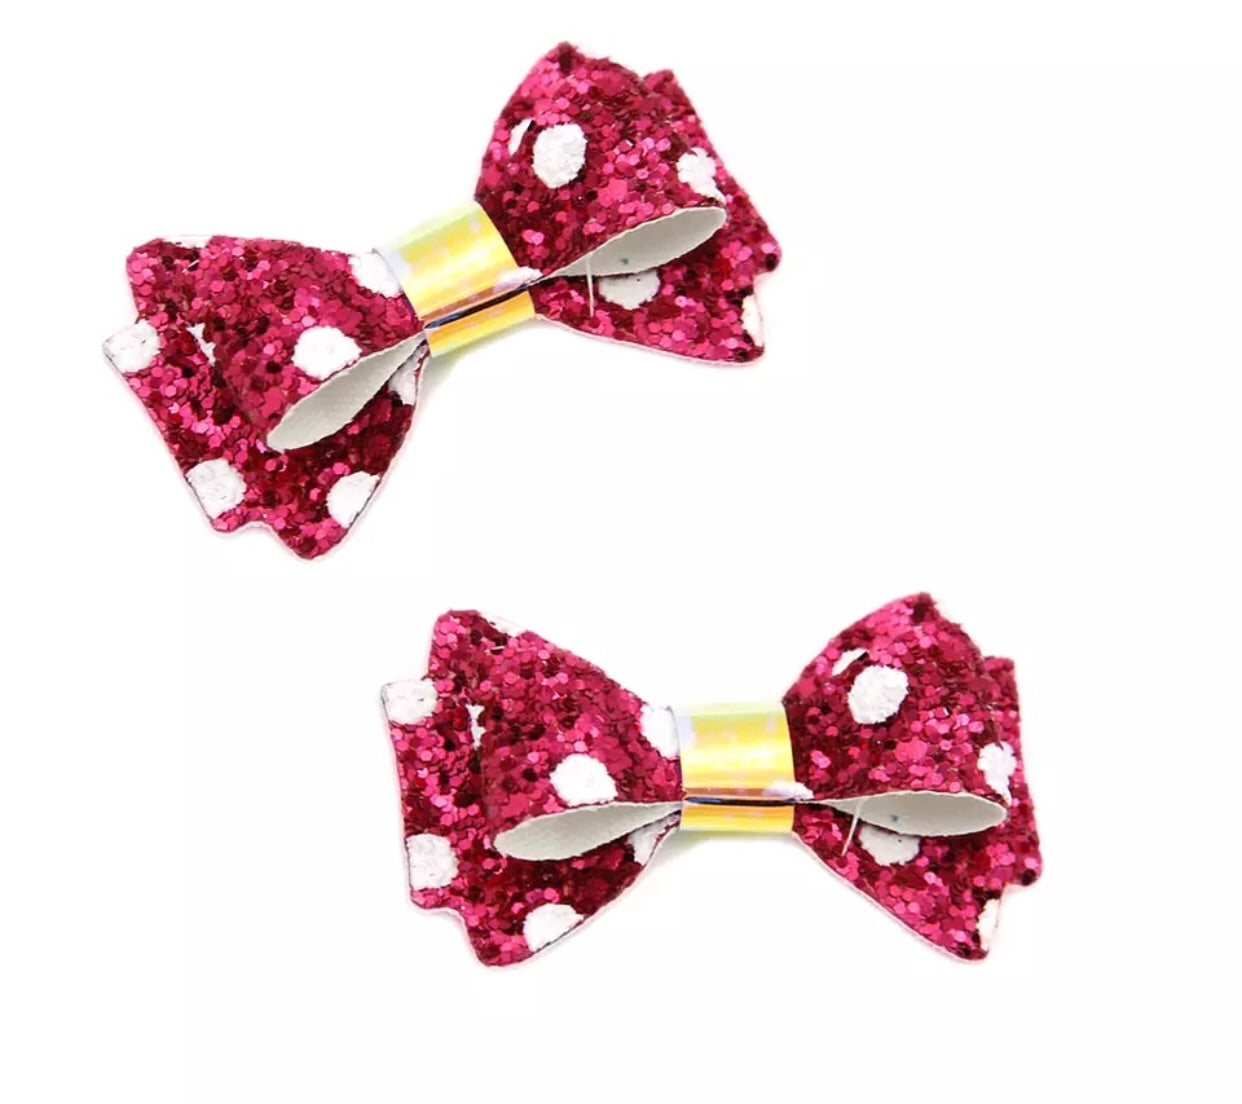 Chunky Glitter Bow - White Dots on Hot Pink - shabbyflowers.com